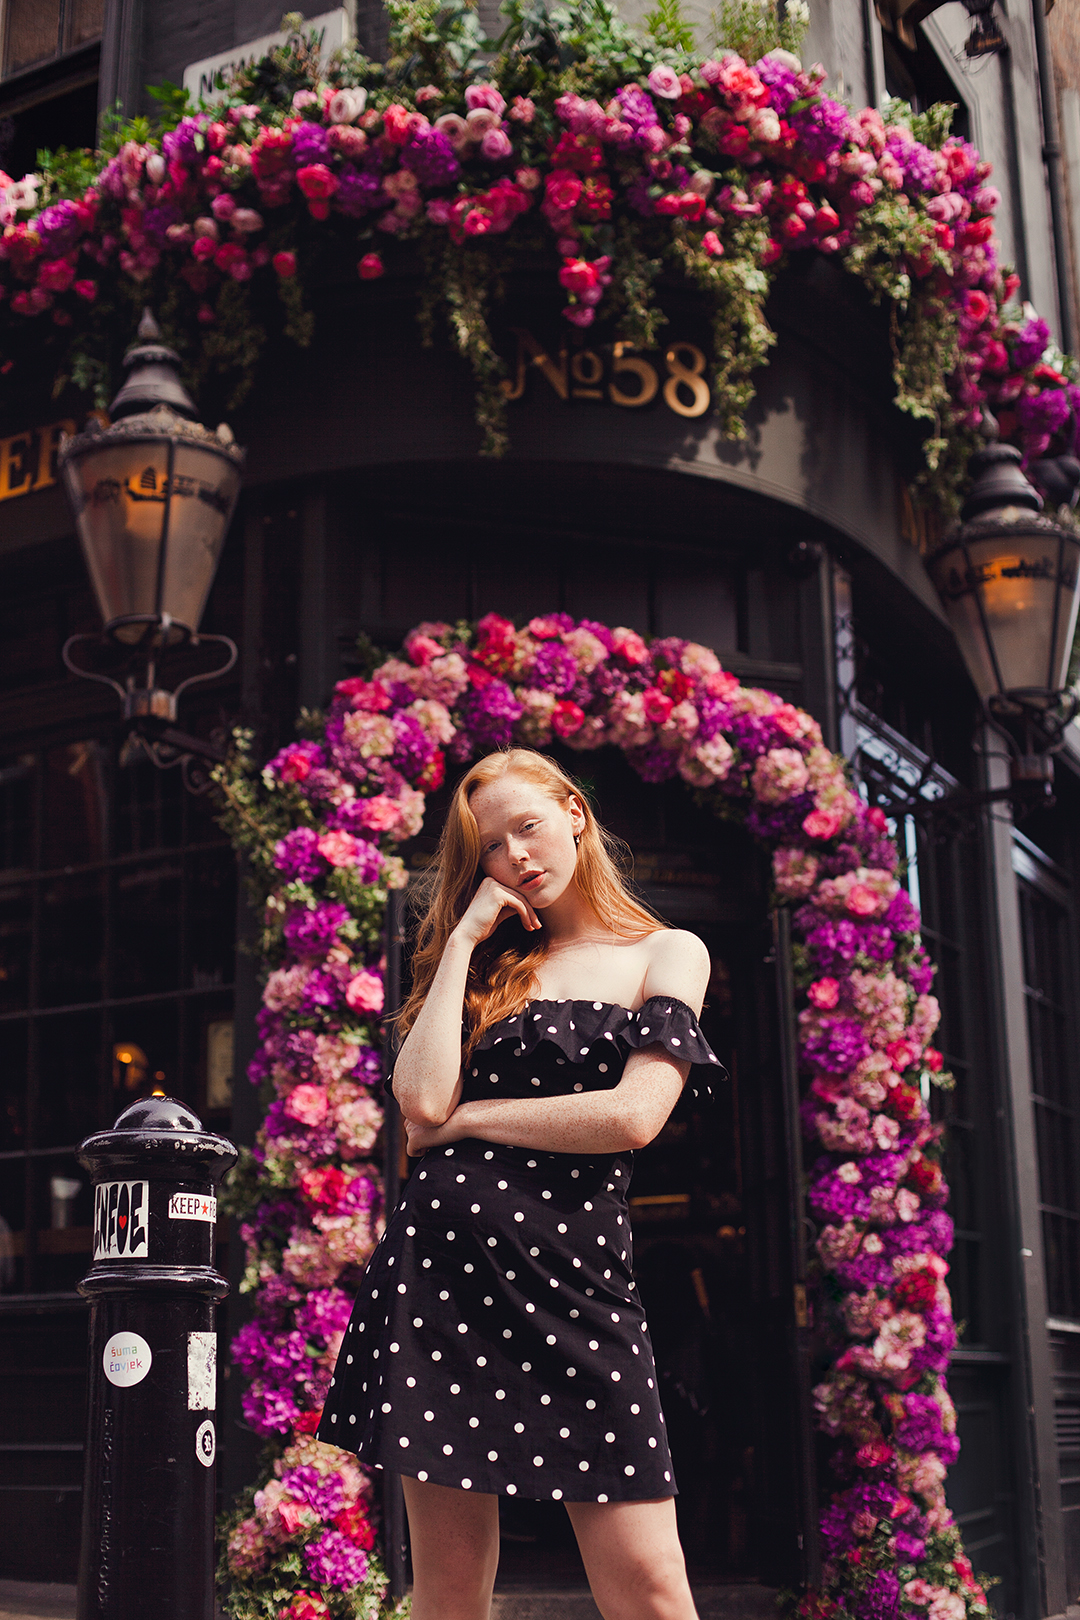 Redhead fashion blogger Holly Rebecca White in front of flower pub by Ailera Stone